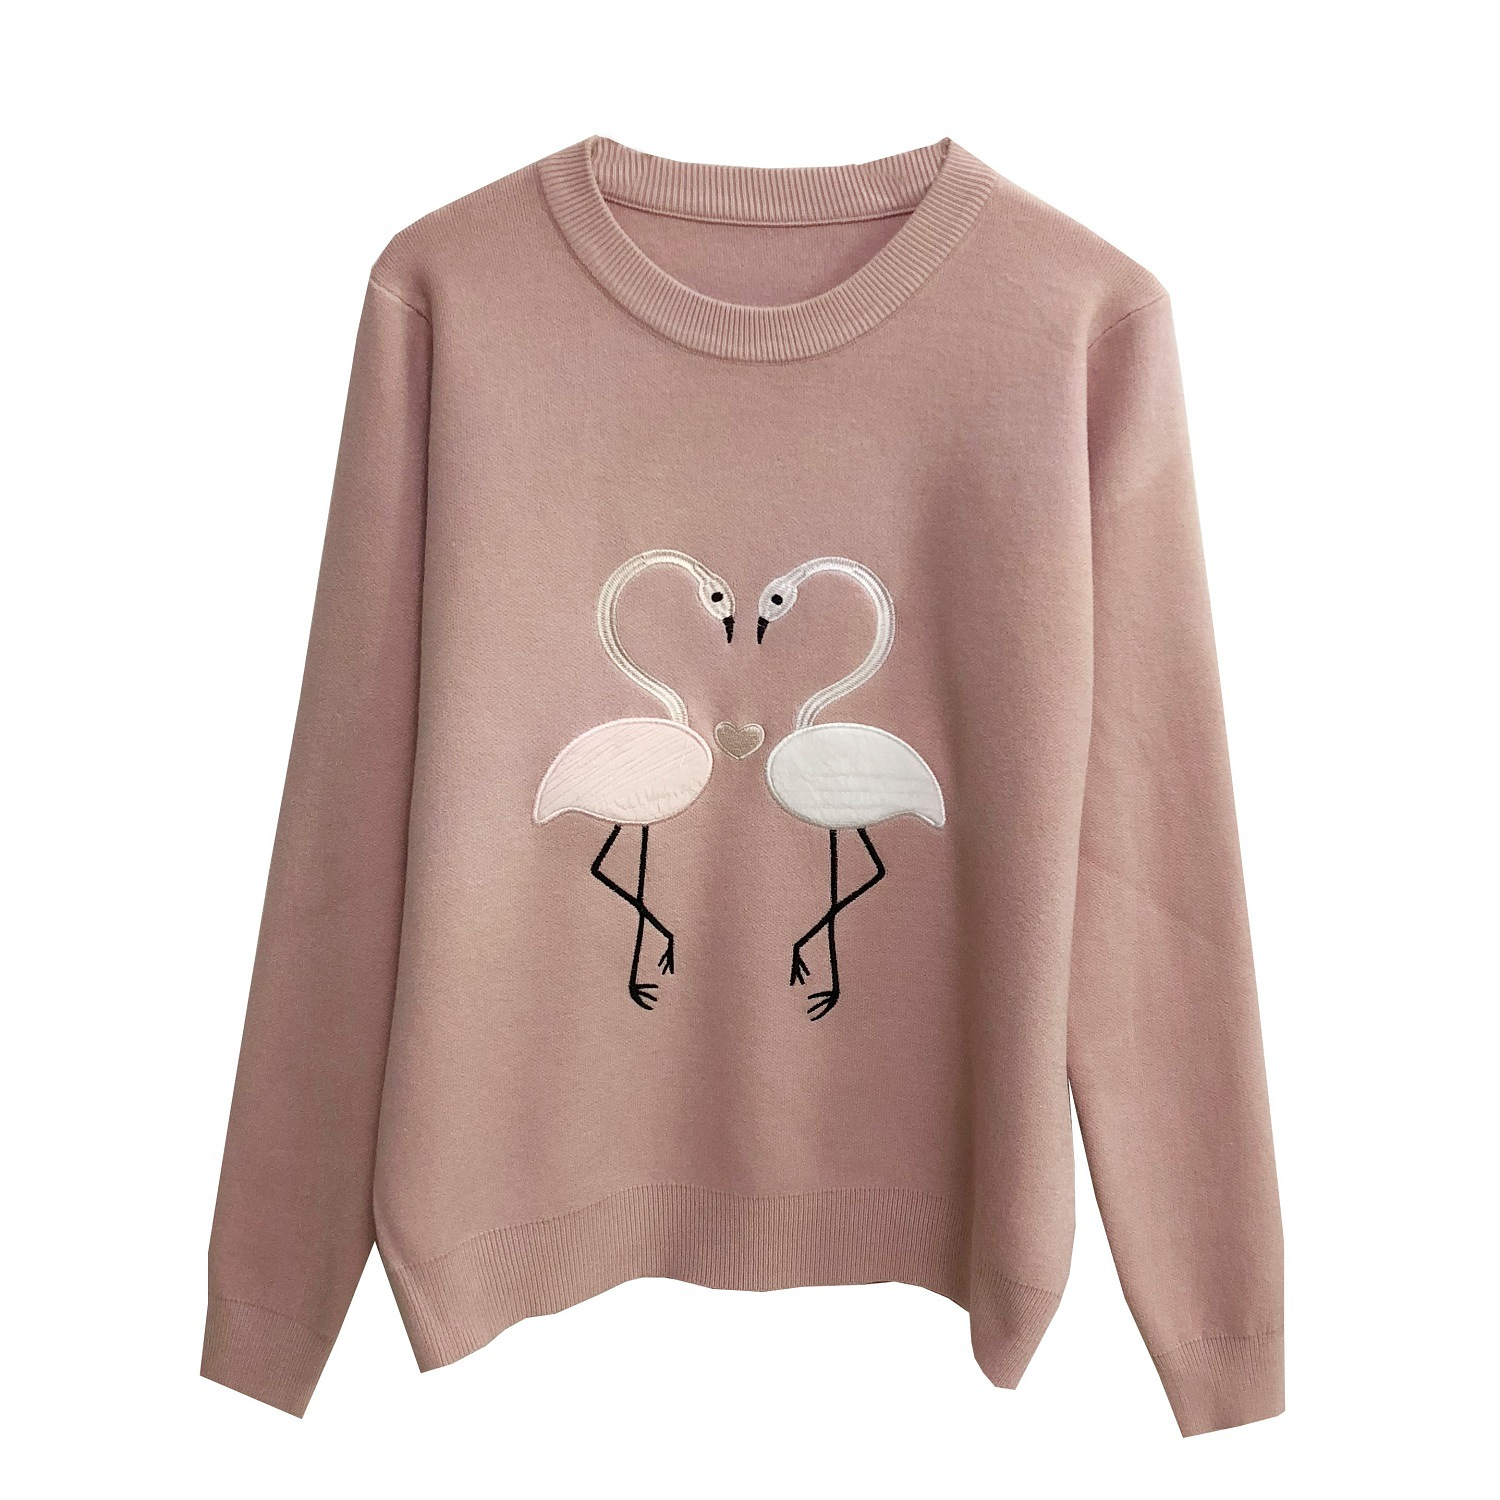 Fashion Casual pink Women white And White gray Embroidery Sweater Runway yellow New High Winter Pullovers Beige Sweaters Designer Autumn Quality Knitted xUqWf6wX